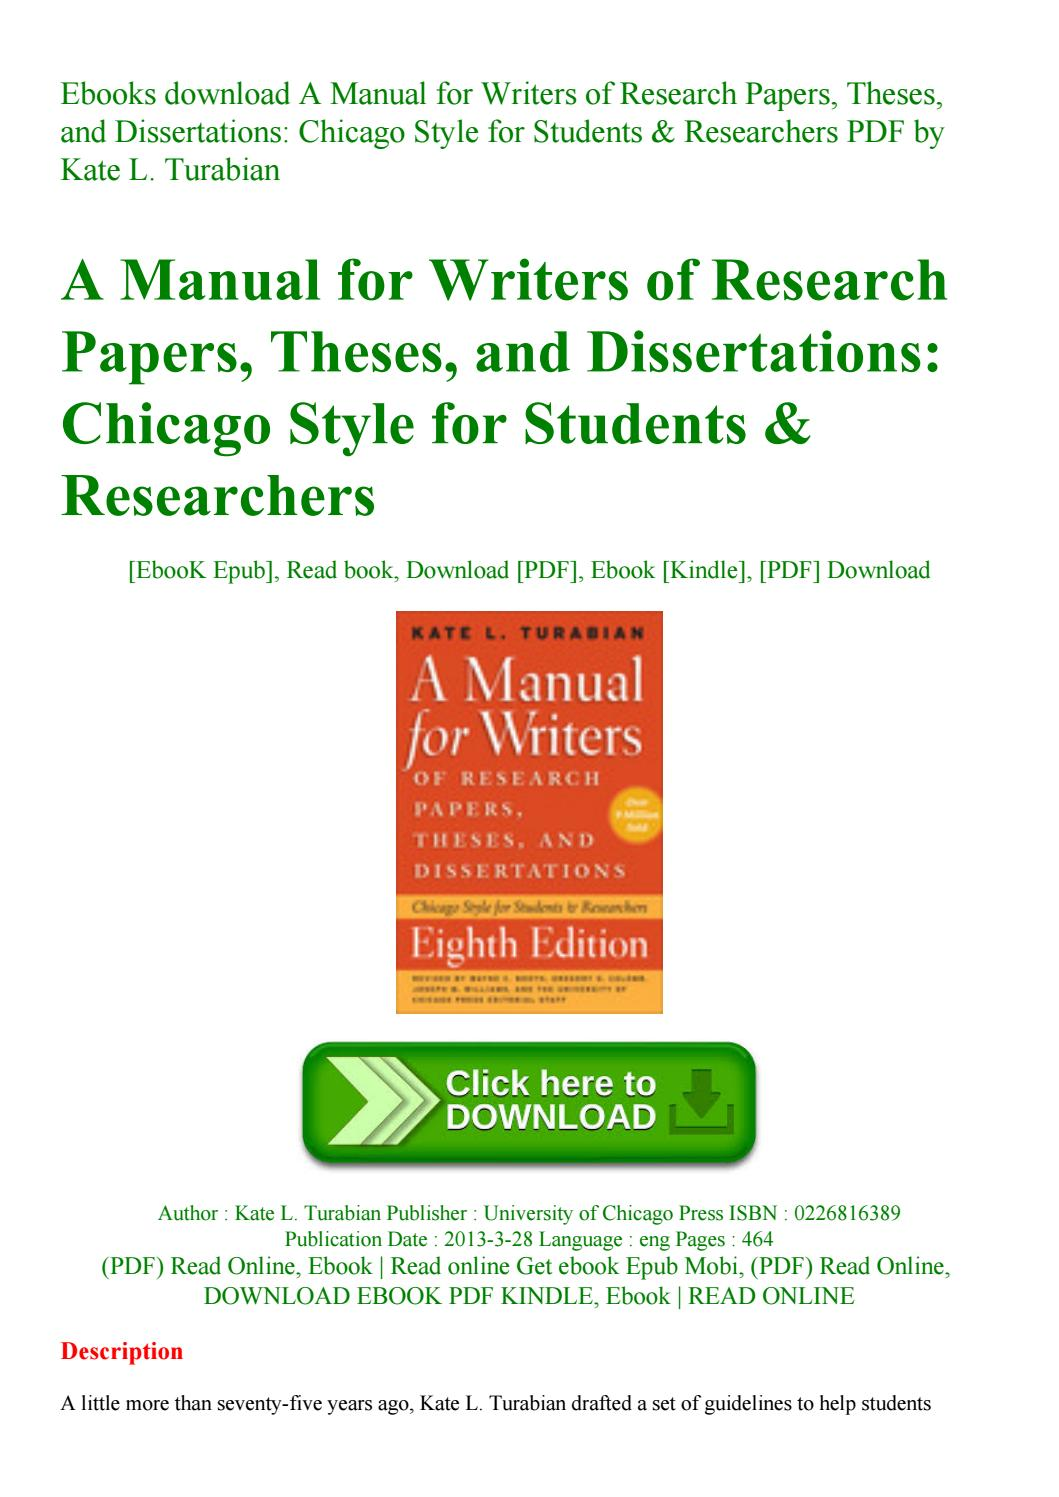 001 Research Paper Page 1 Manual For Writers Of Papers Theses And Dissertations Eighth Edition Incredible A Pdf Full